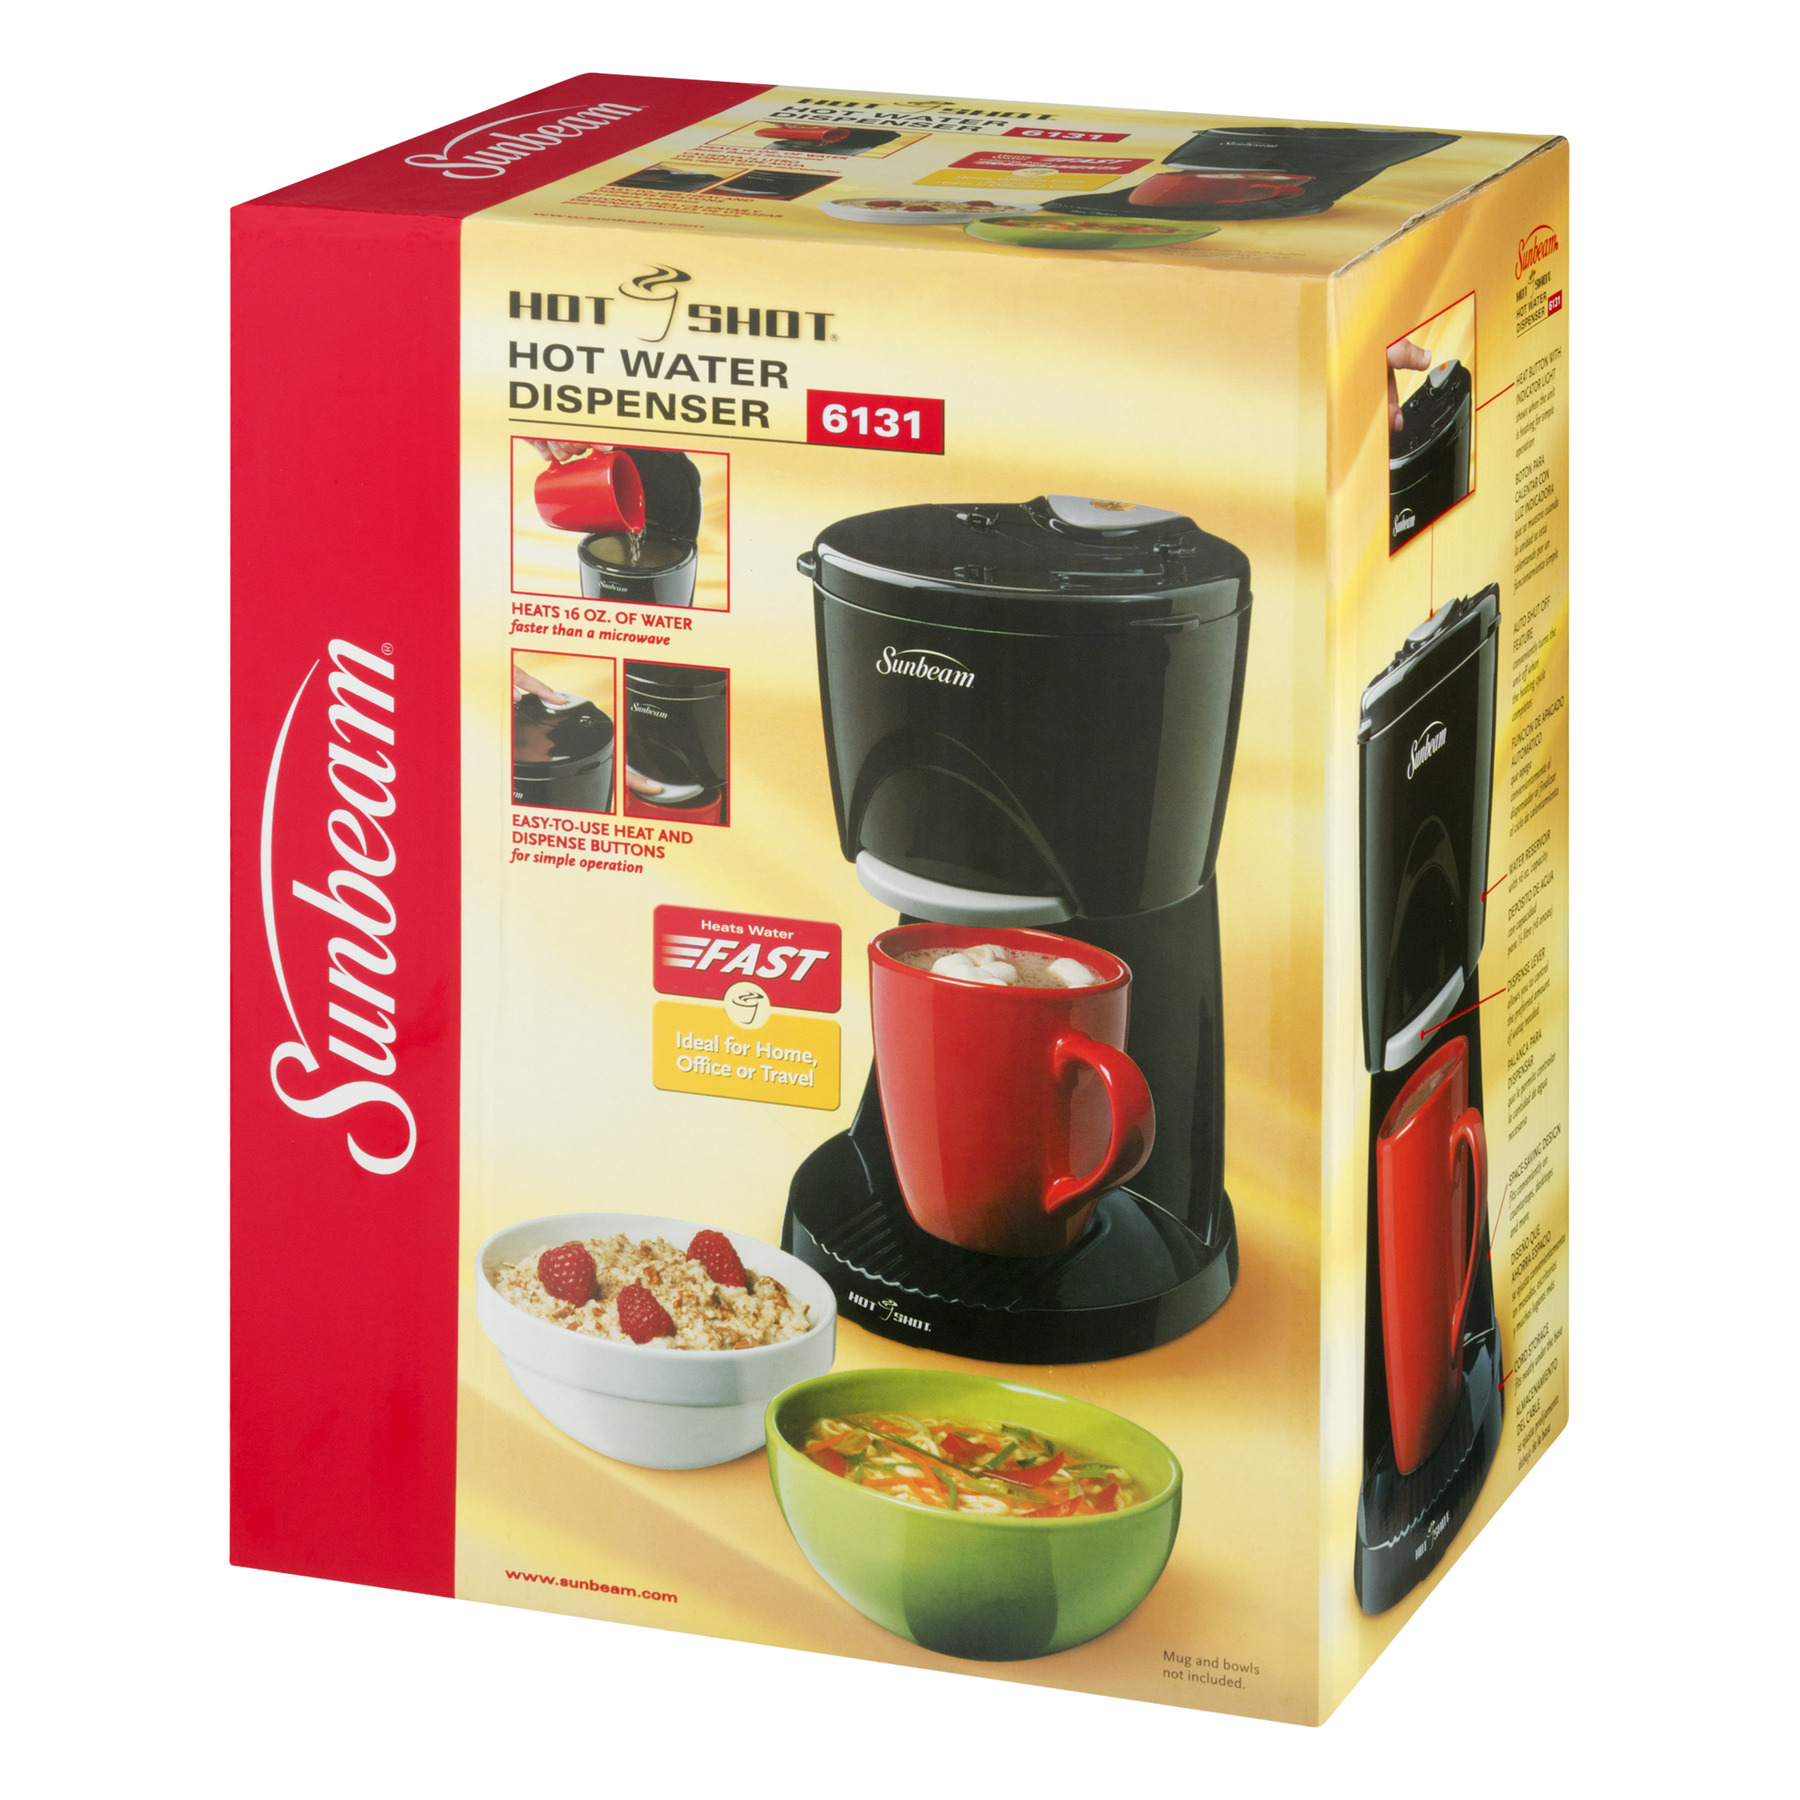 Dual Coffee Maker Hot Water Dispenser : One Cup Hot Water Dispenser Australia - Automatic Soap Dispenser